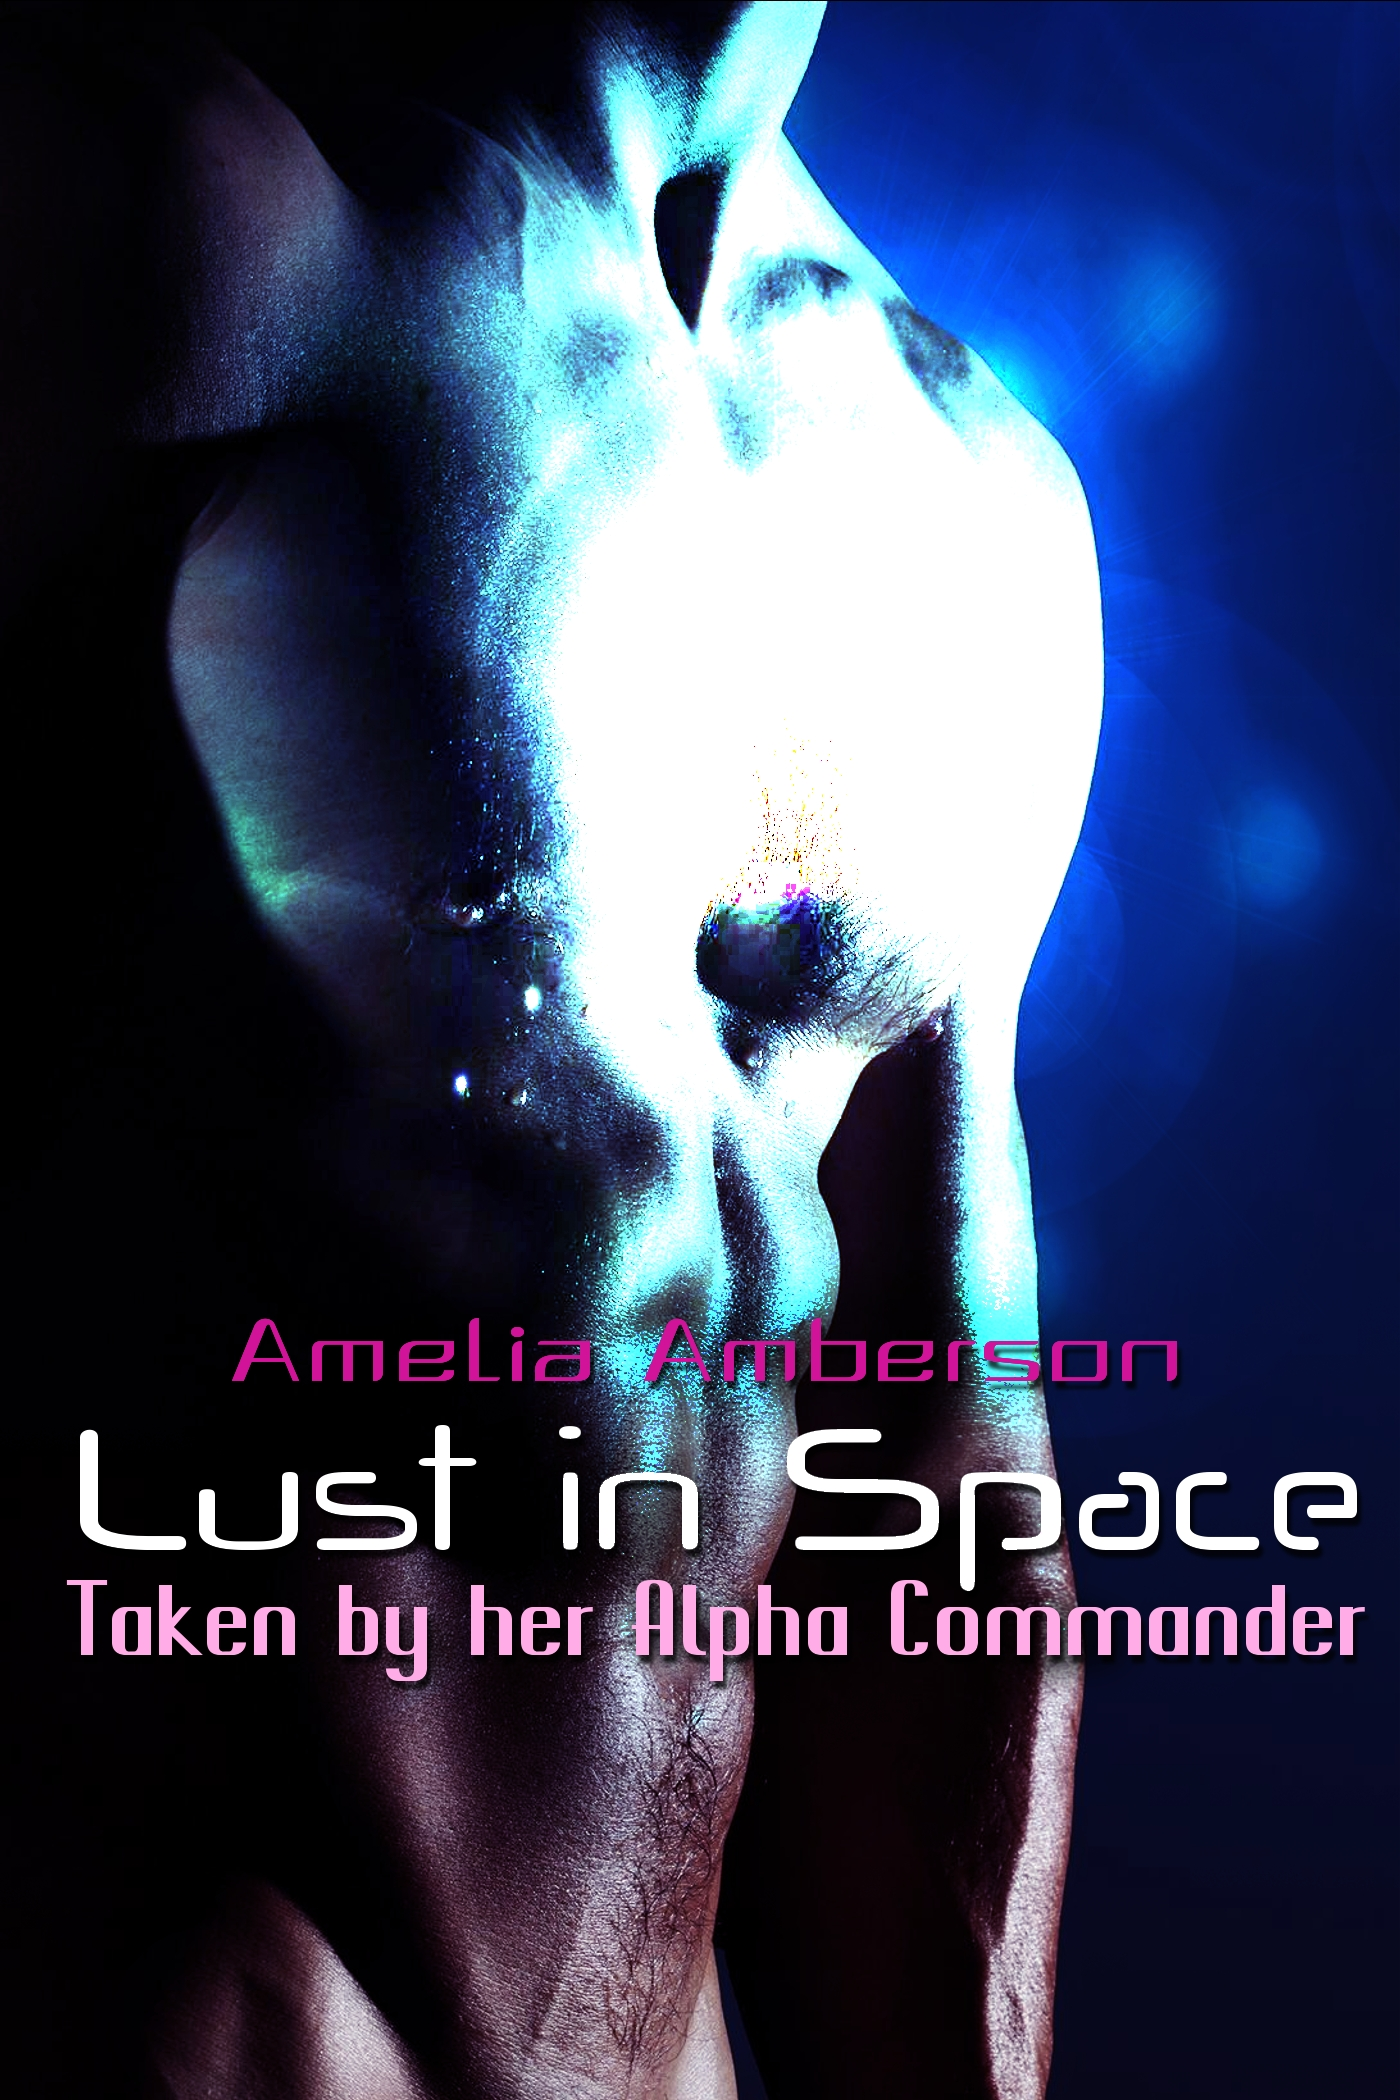 Amelia Amberson - Lust in Space - Taken by her Alpha Commander